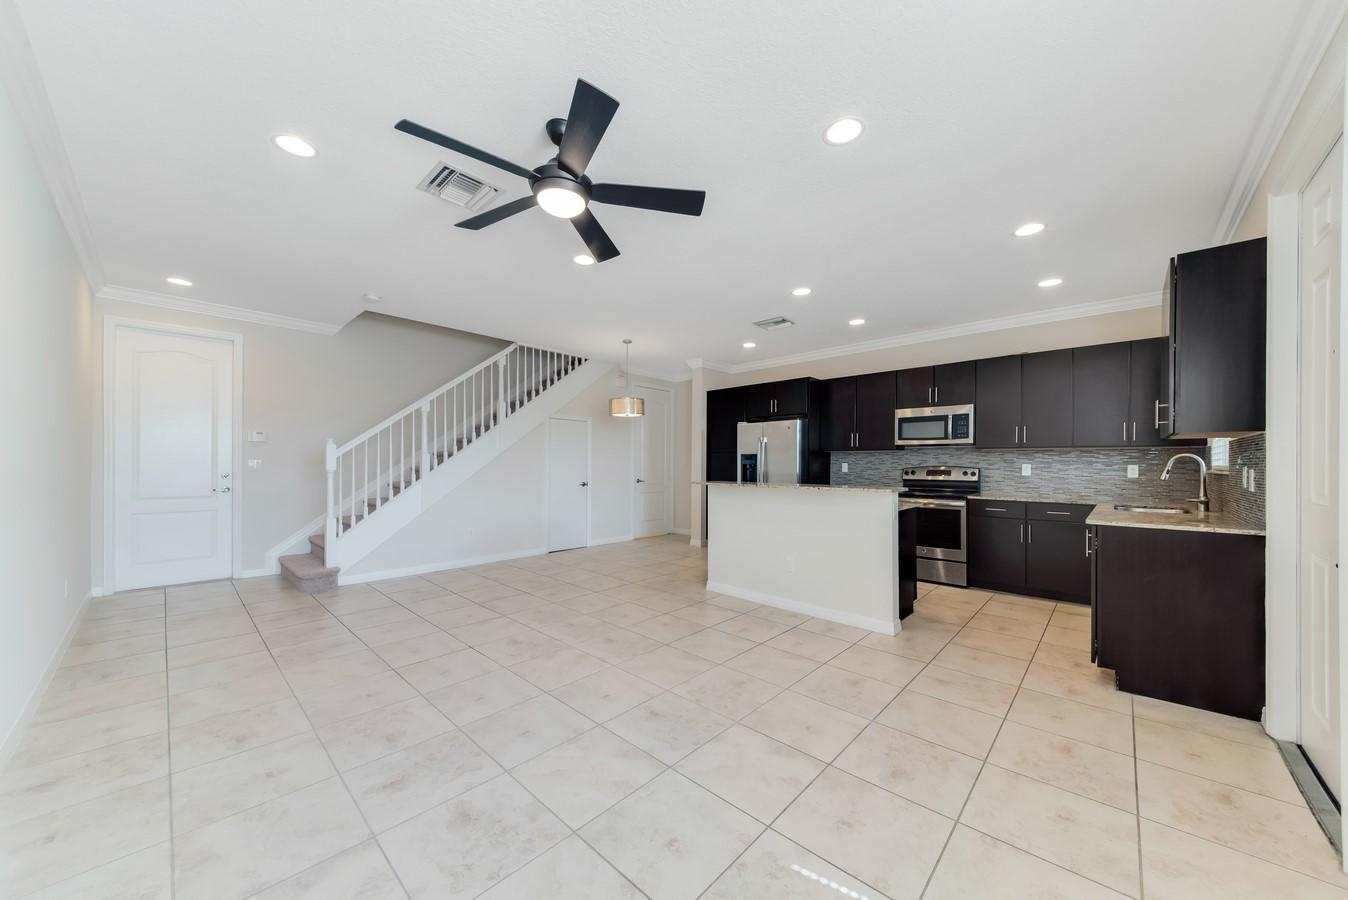 Home for sale in Lucente Lake Worth Beach Florida